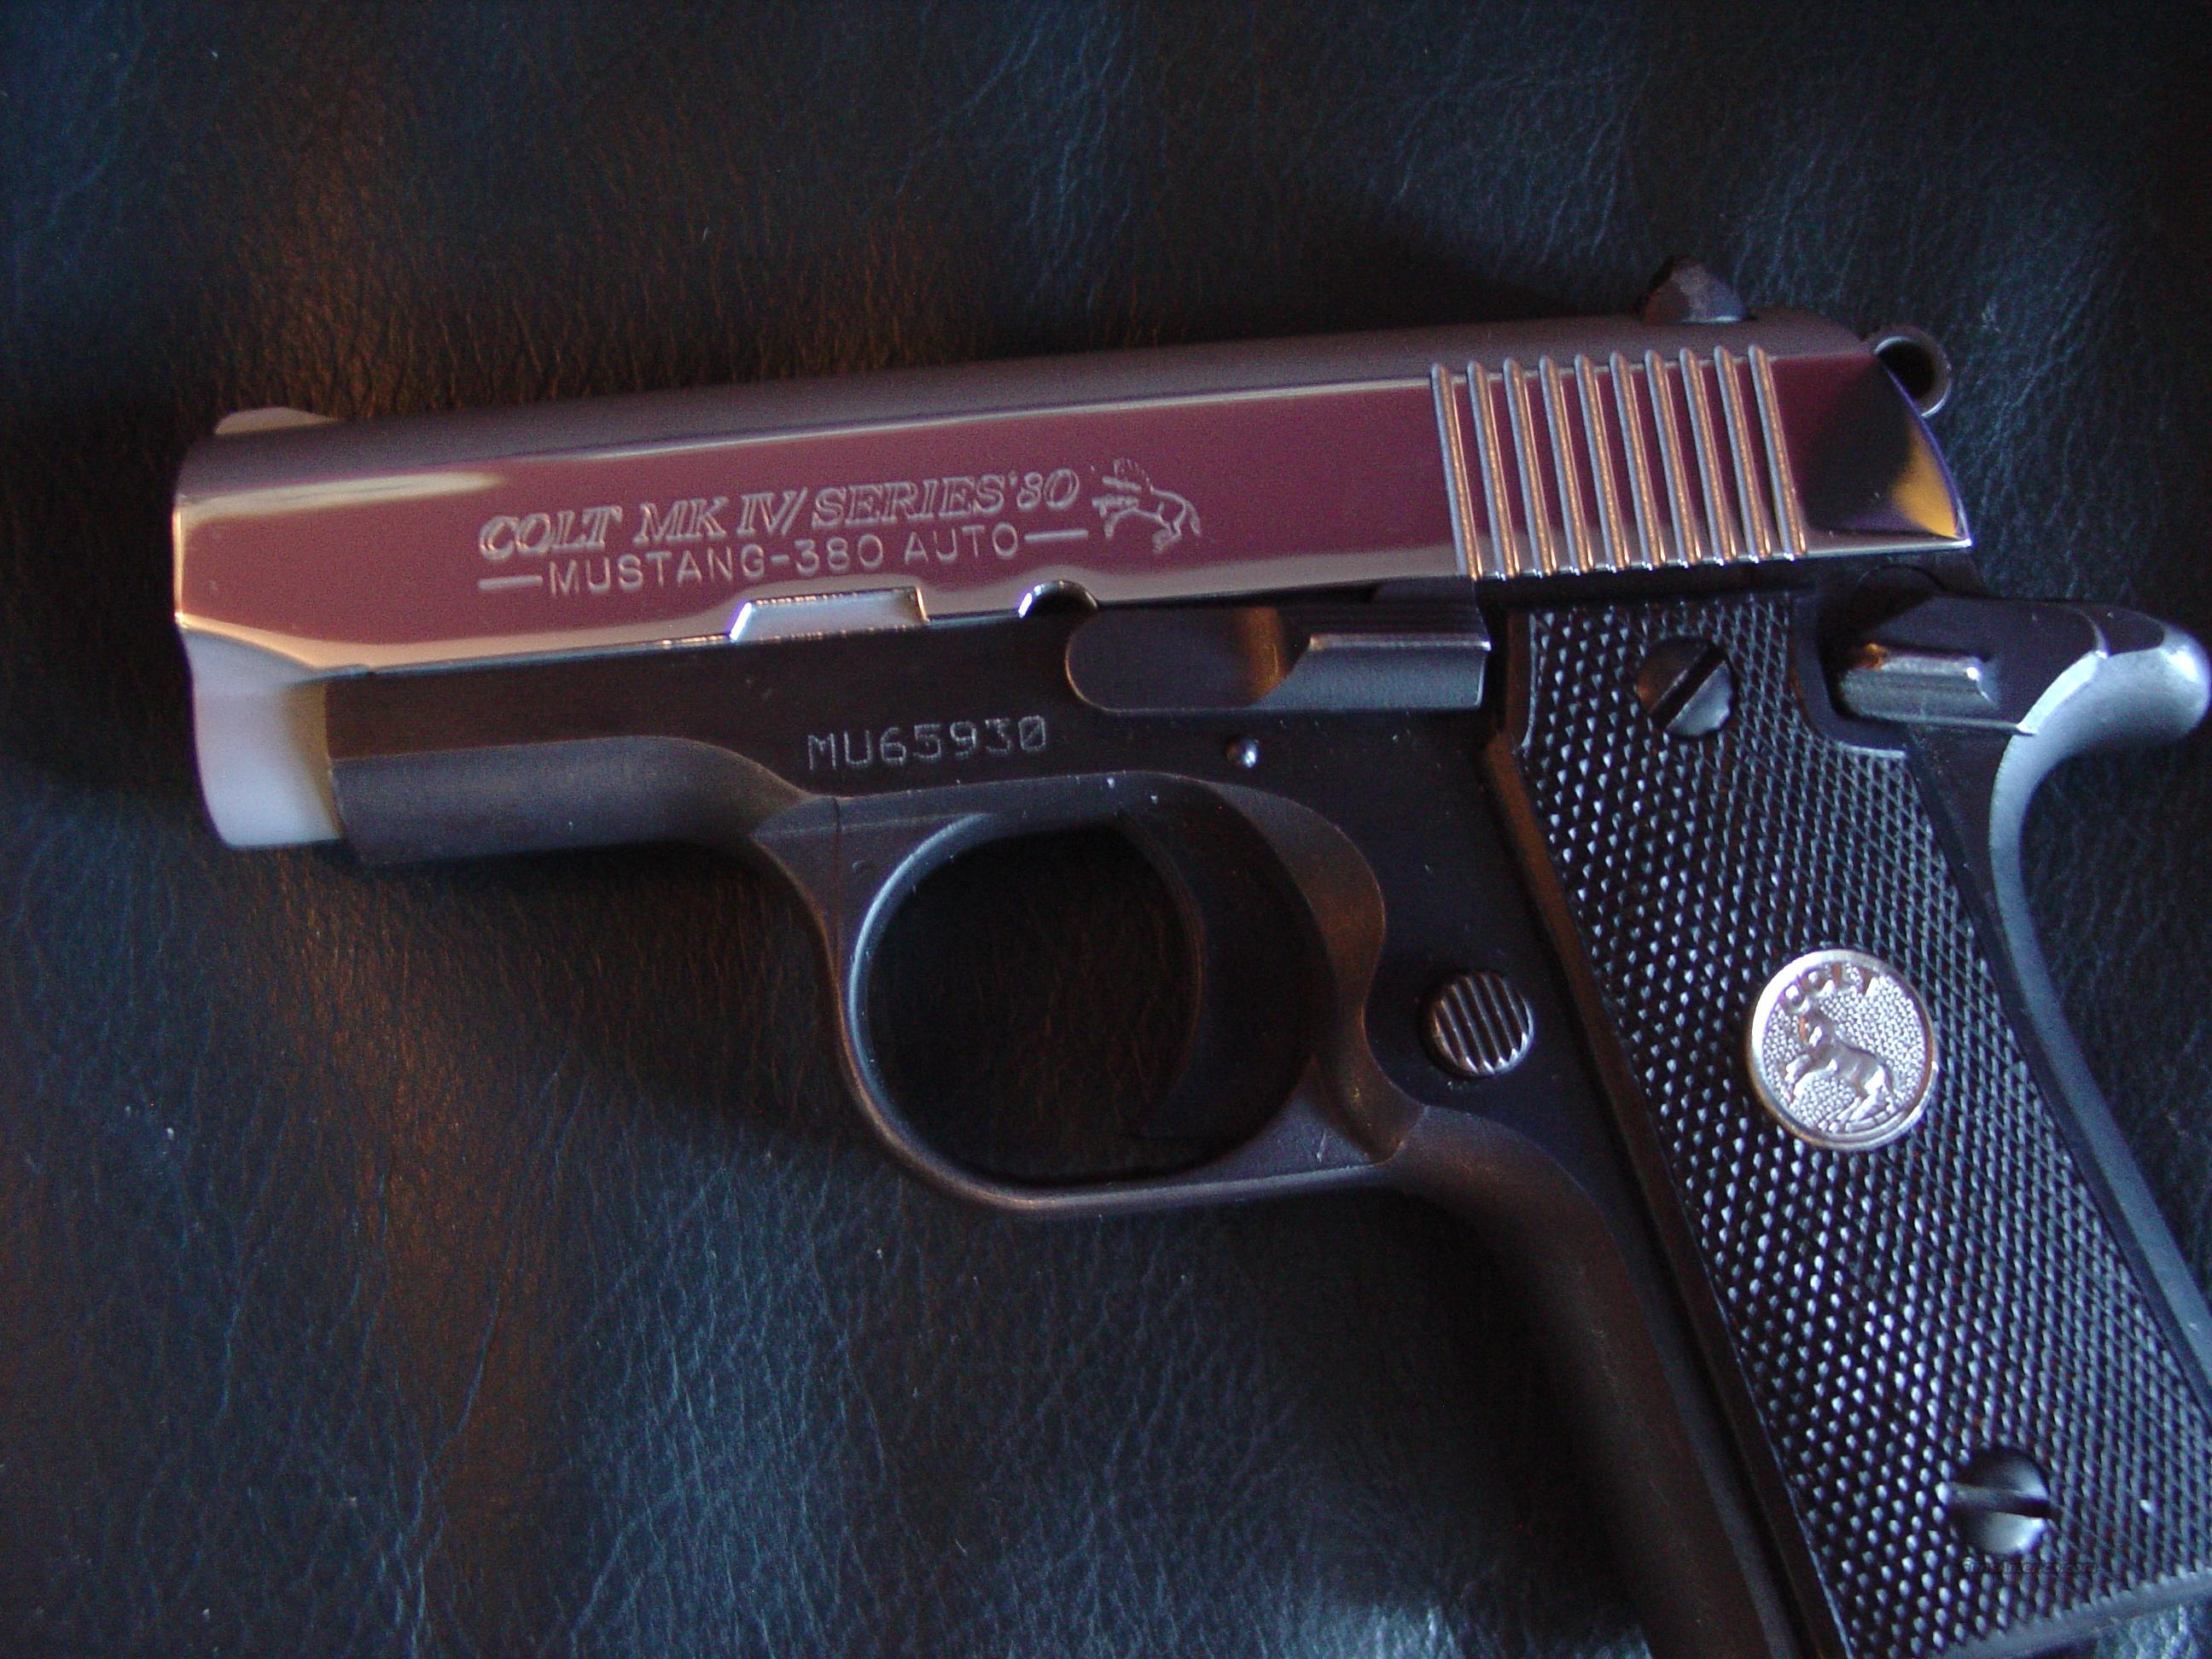 Colt Mk IV Series 80,Mustang,high gloss polished stainless slide,steel blued